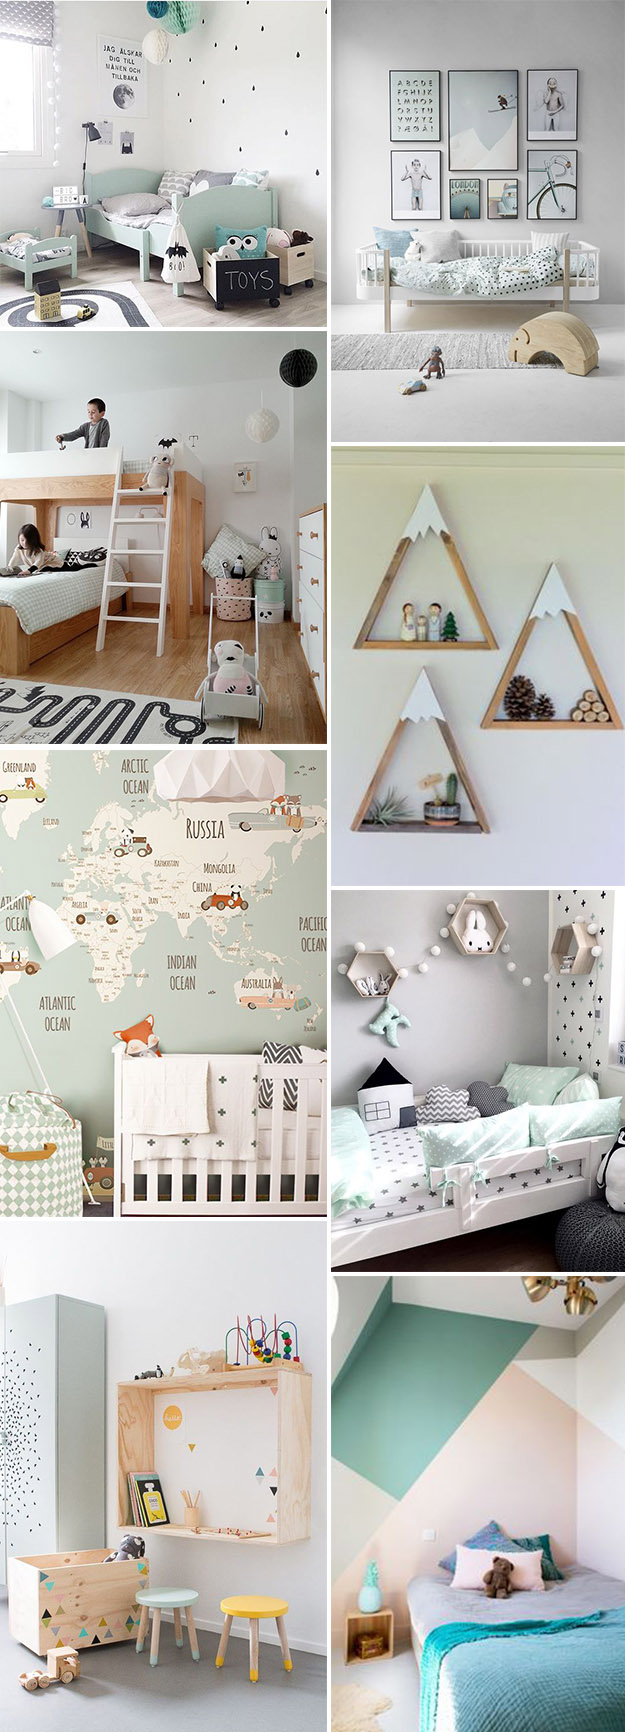 Awesome idee deco chambre bebe mixte contemporary for Decoration chambre jumeaux mixte